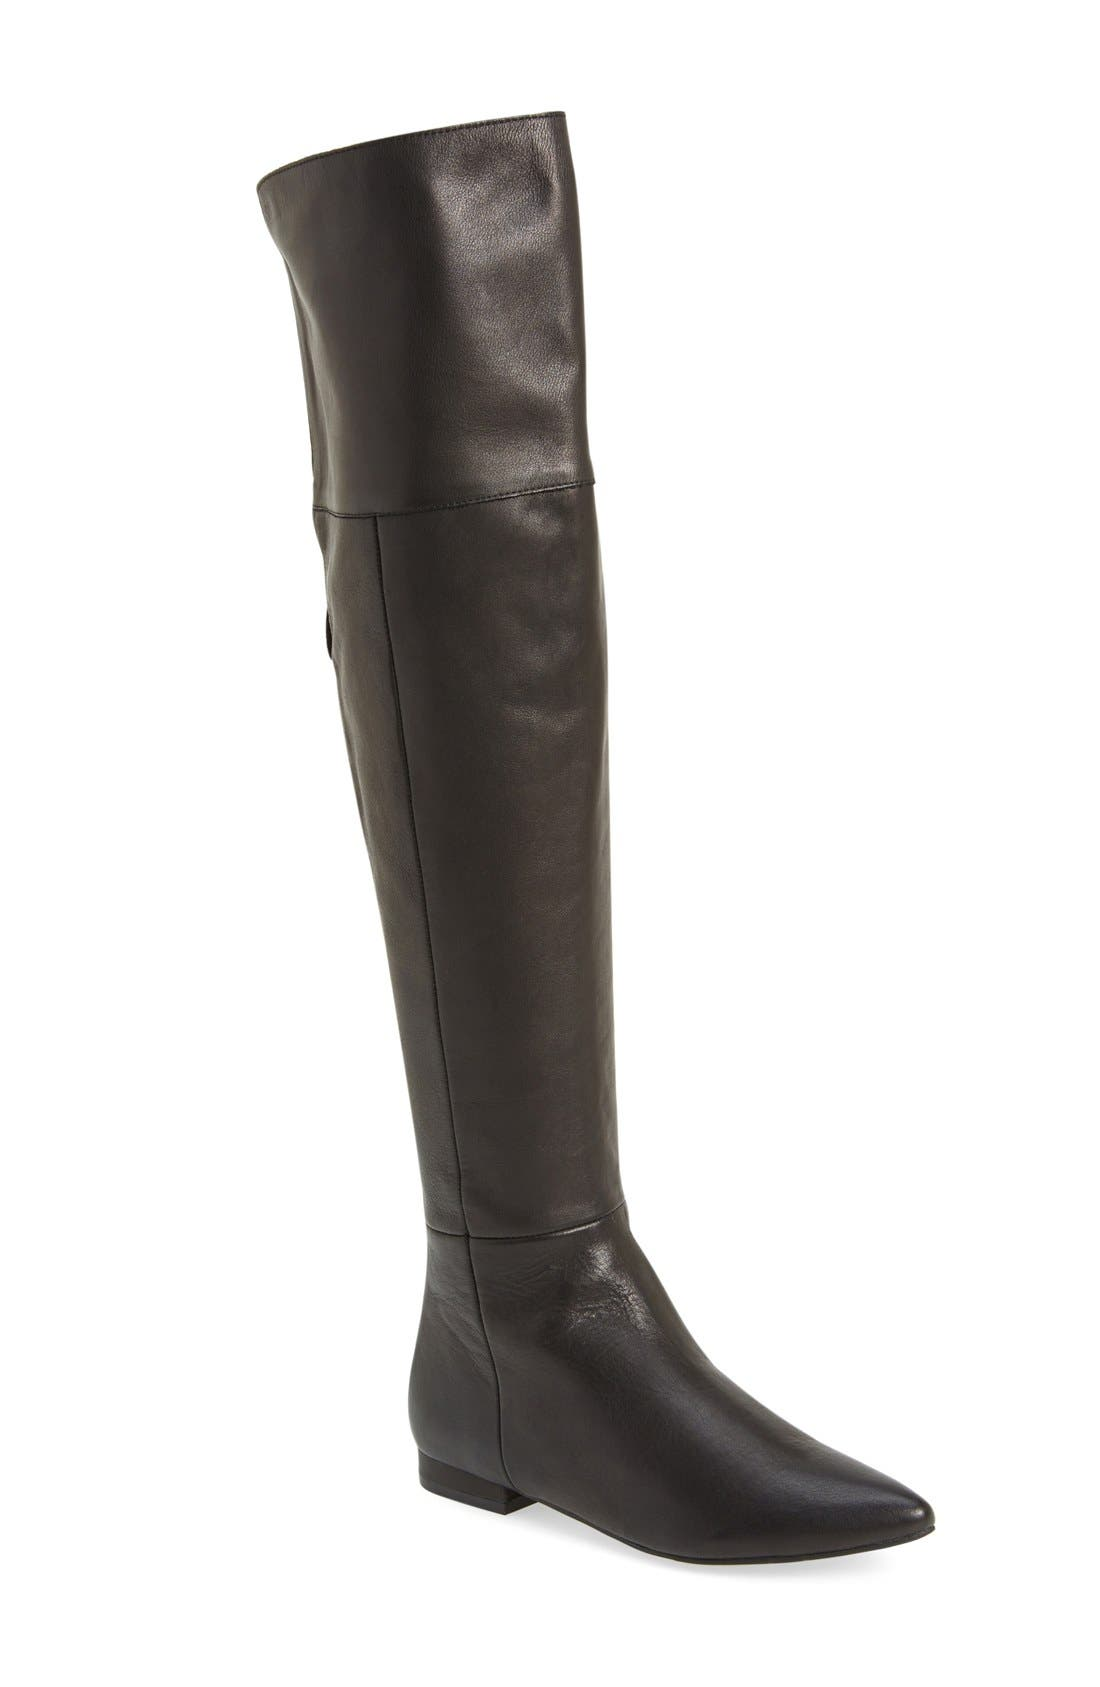 Kristin Cavallari 'York' Over the Knee Boot (Women)